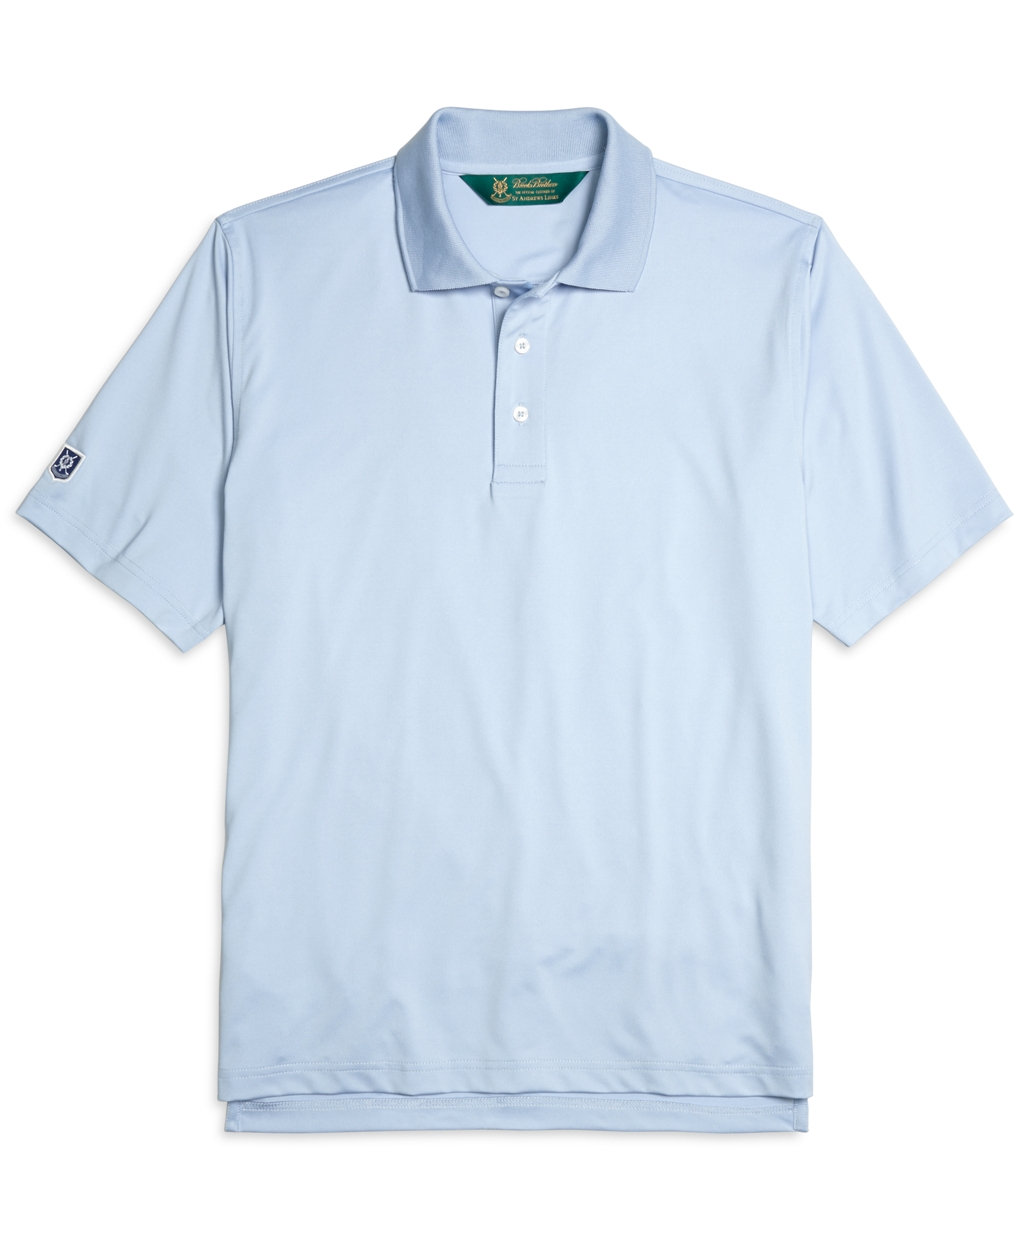 Brooks brothers blue st andrews links polo shirt for men Brooks brothers shirt size guide